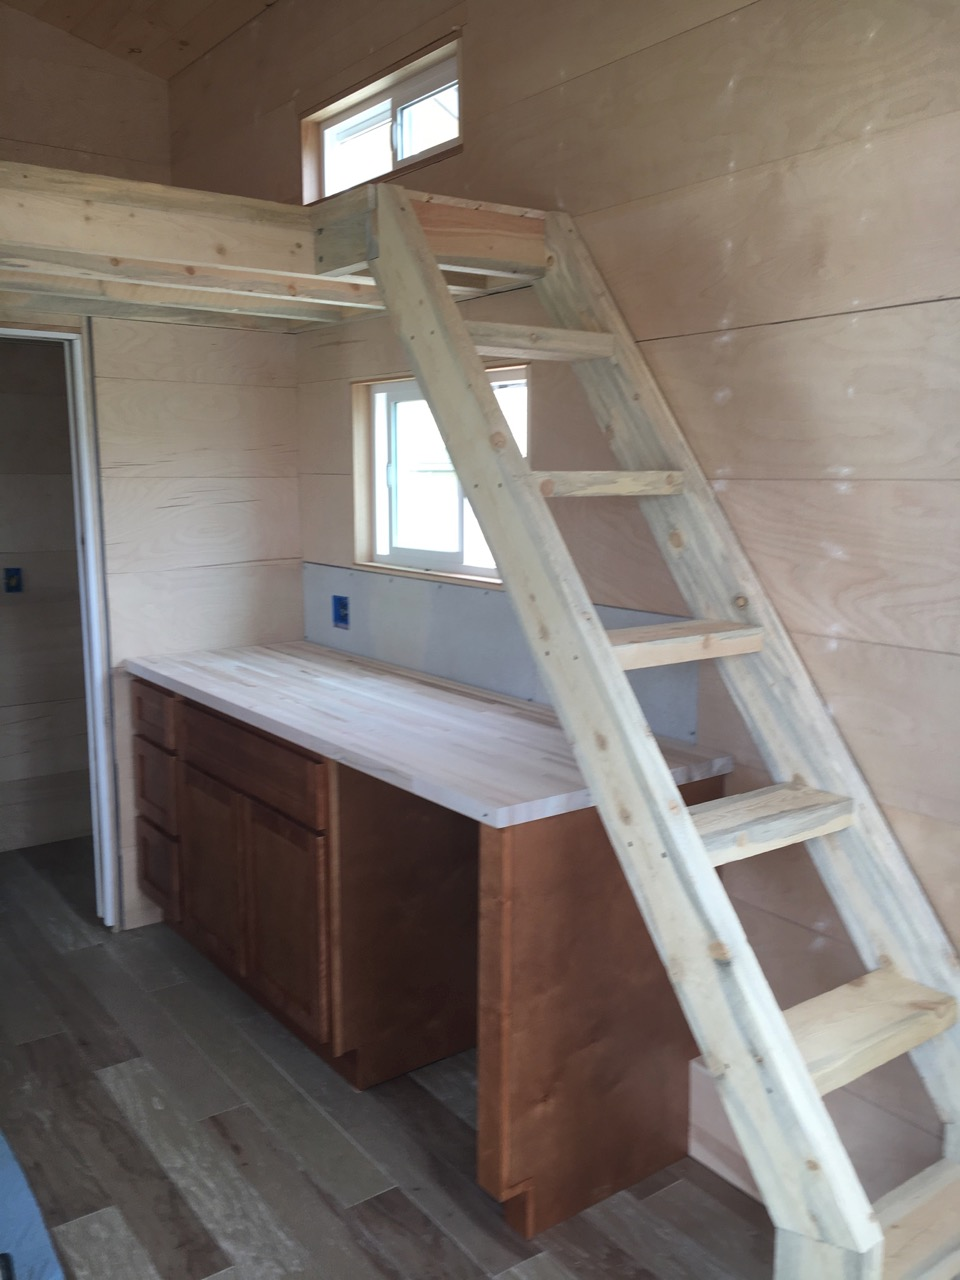 Wheelhouse-tiny-homes-18.jpg